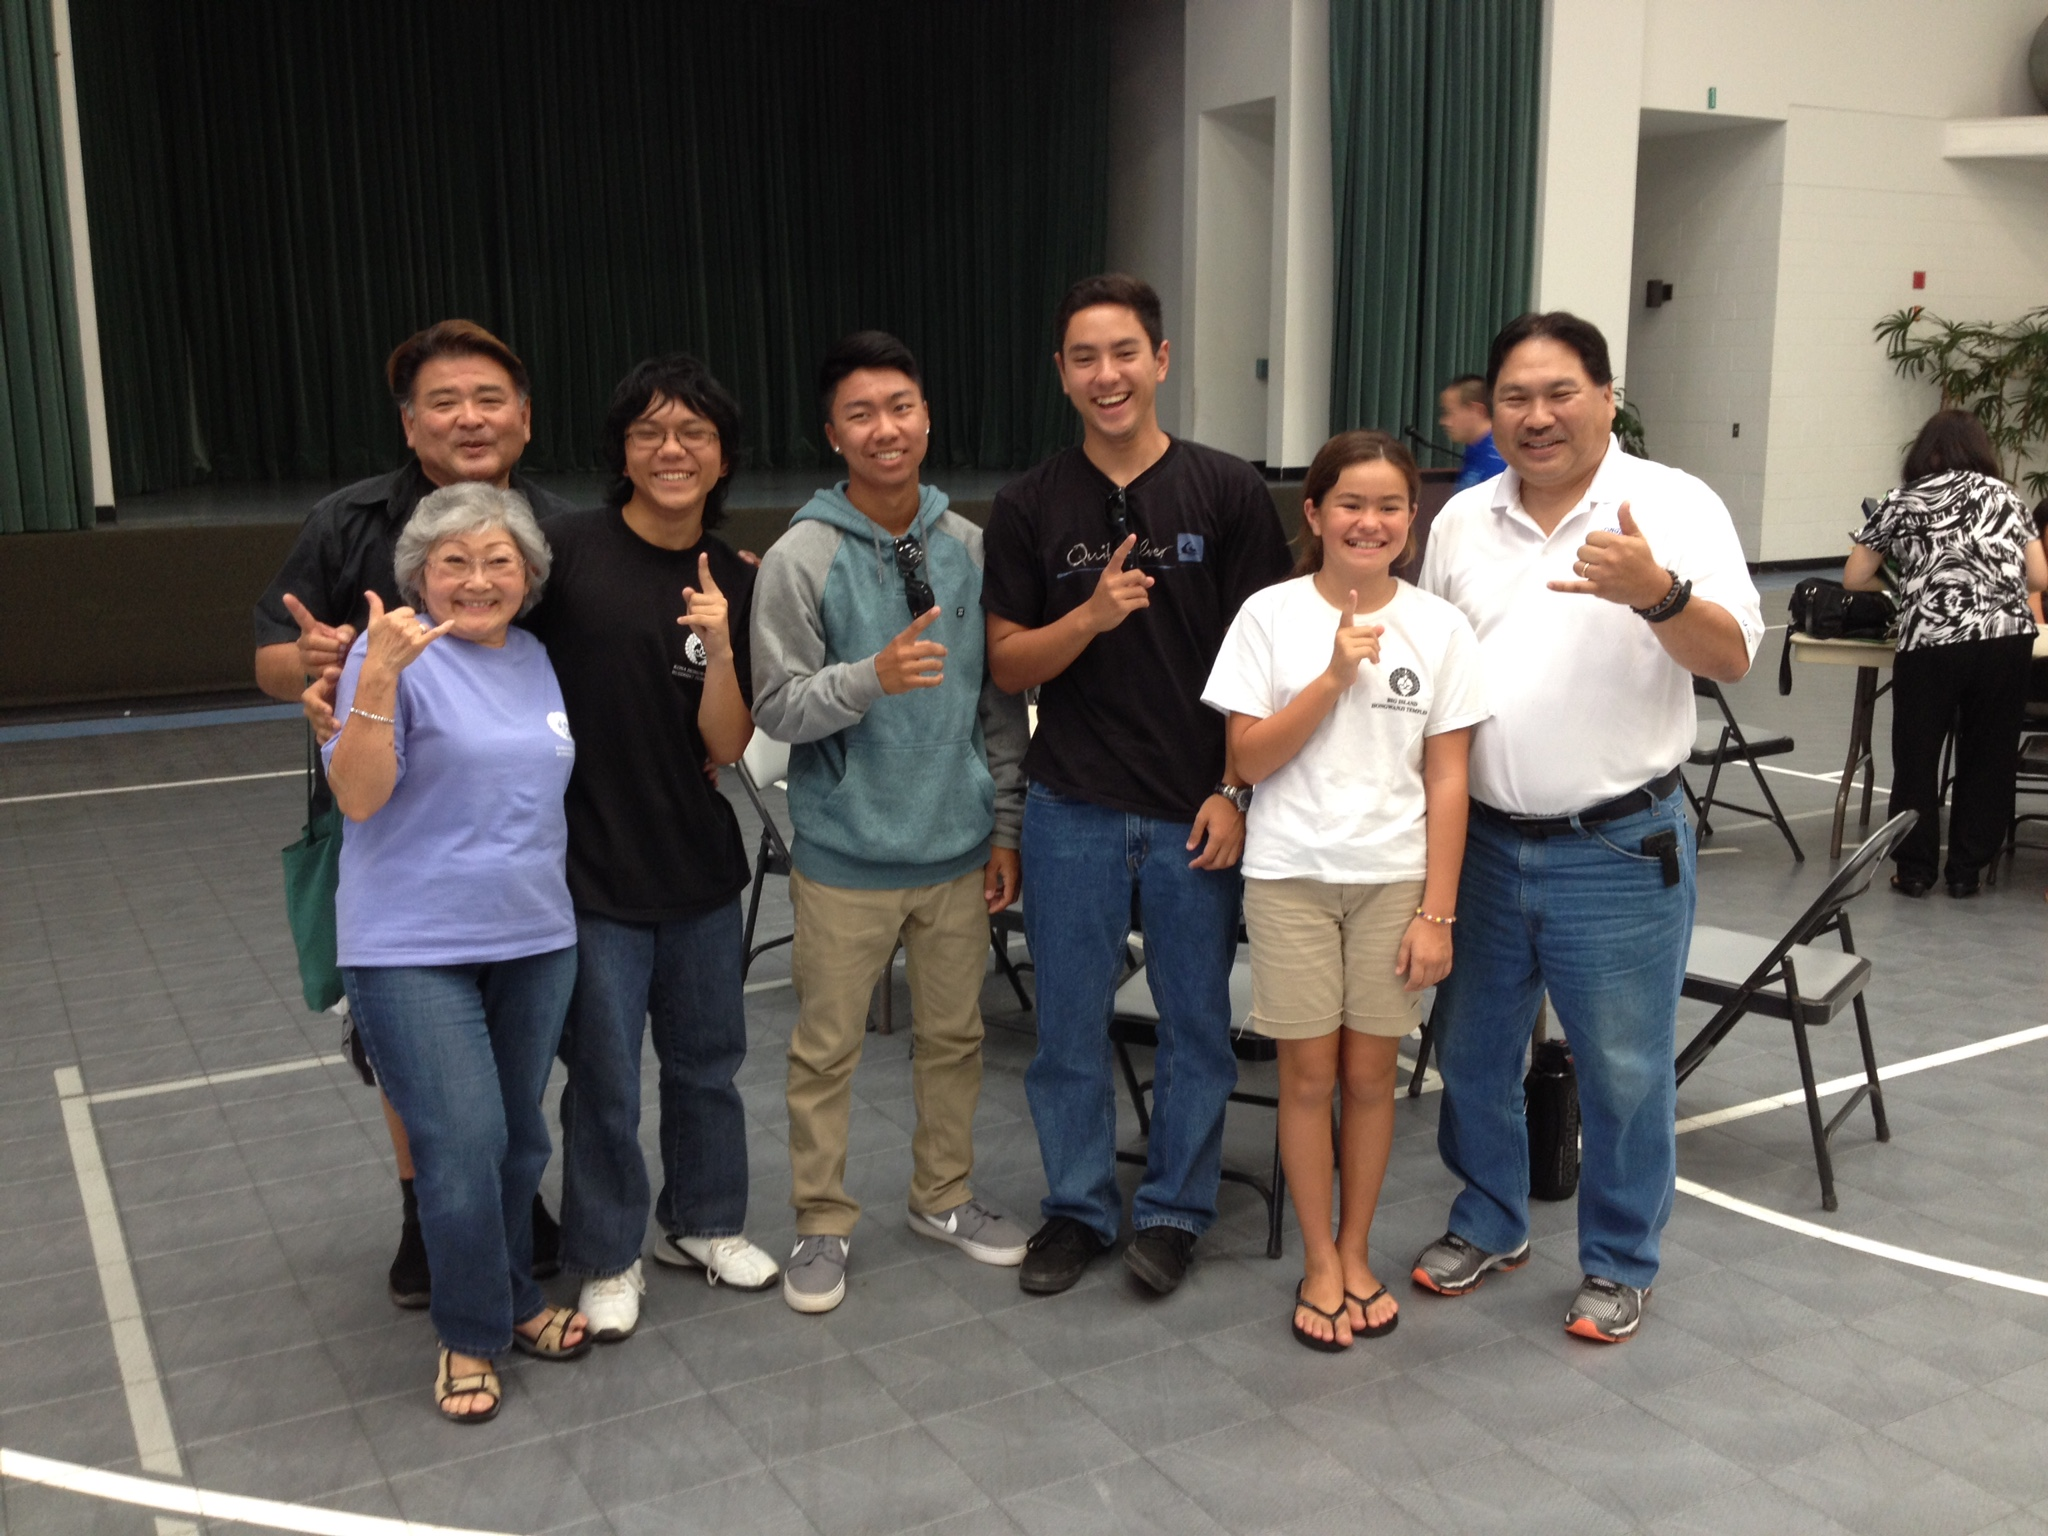 From left to right: Reverend Bruce Nakamura, Dharma School teacher Betty Takeoka, and quiz bowl participants Trent Terada, Kelsey Katayama, Michael Gusman, Mana Alspach and Daren Katayama.